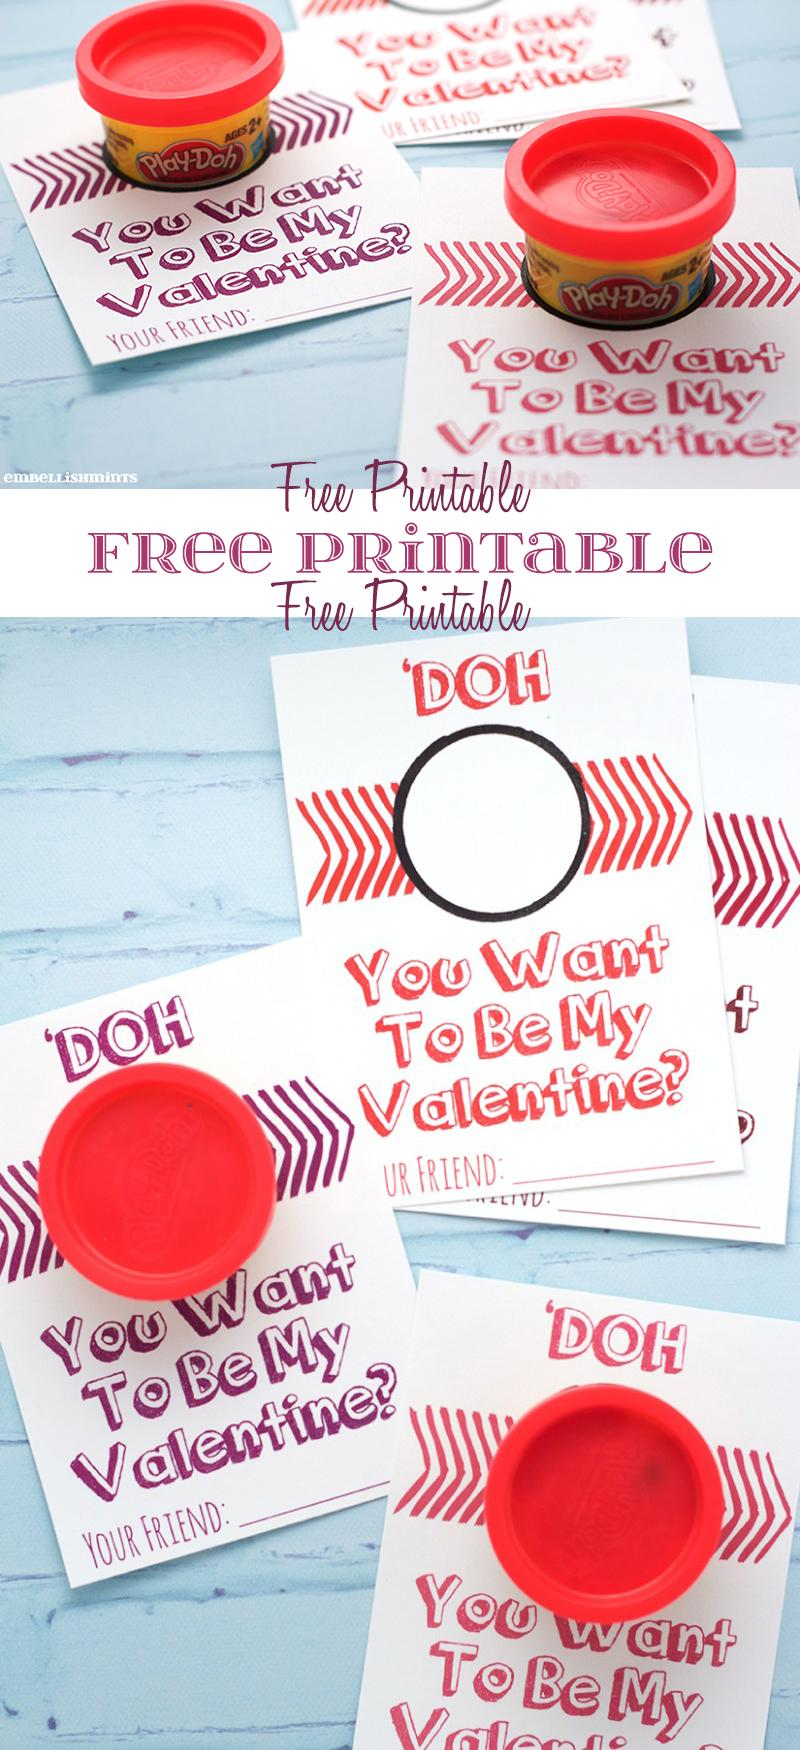 Kids love Play-Doh so it only seems fitting to have a Handmade Play-Doh Valentine for kids to pass out to their friends this Valentine's Day!